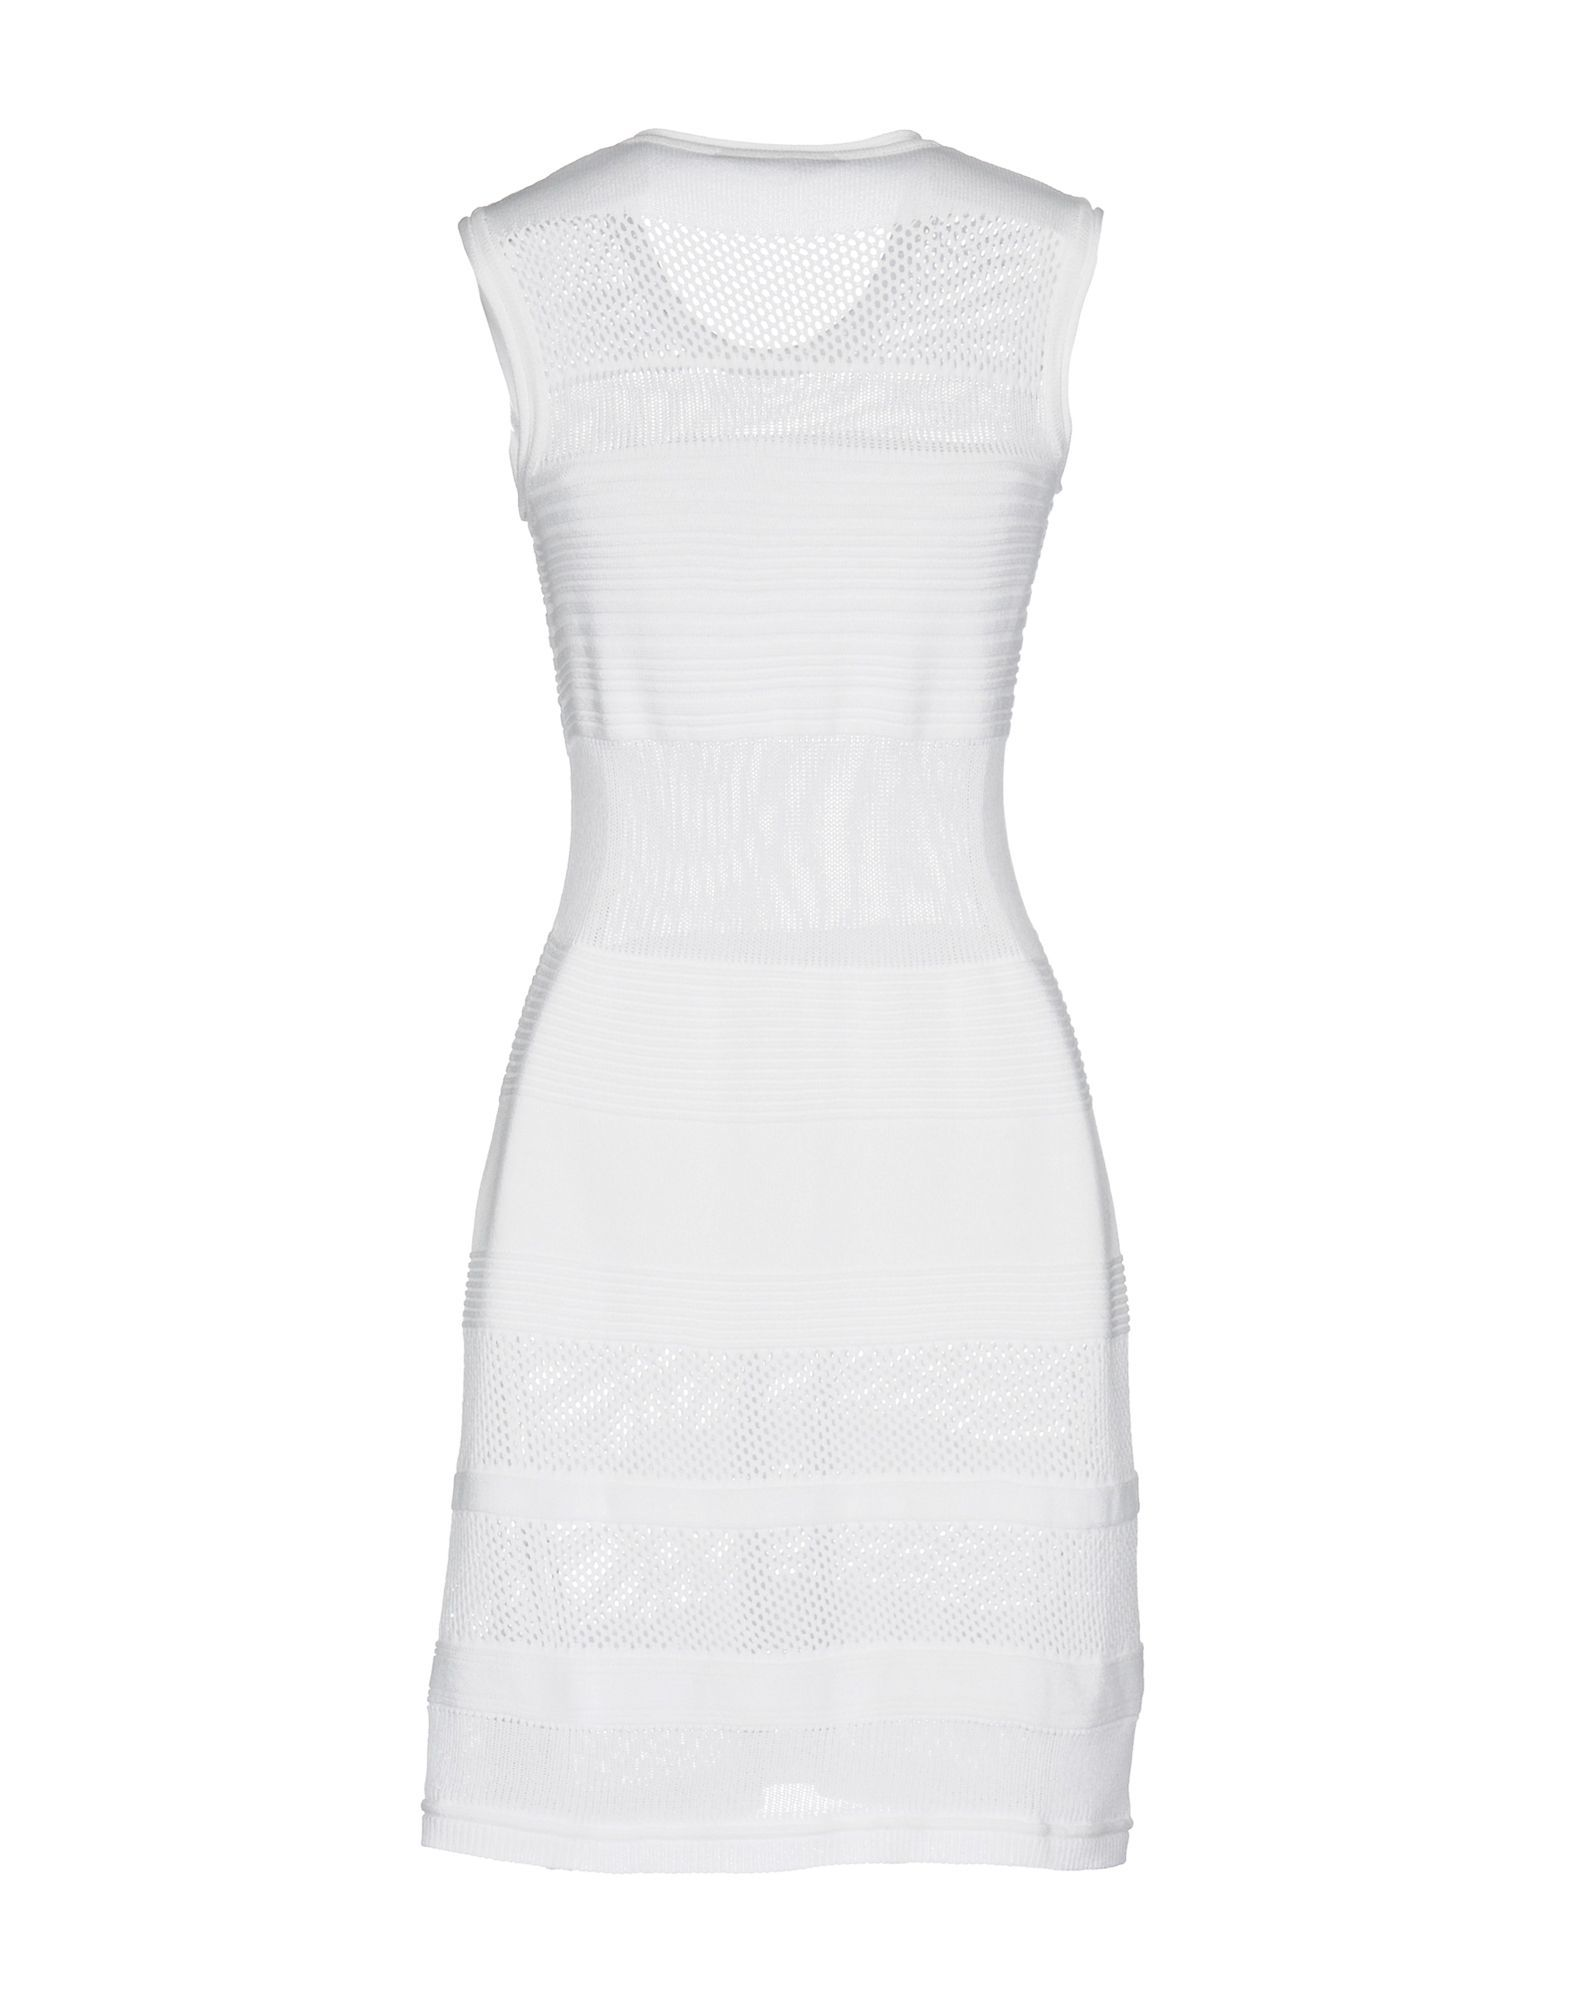 Messagerie White Knit Dress